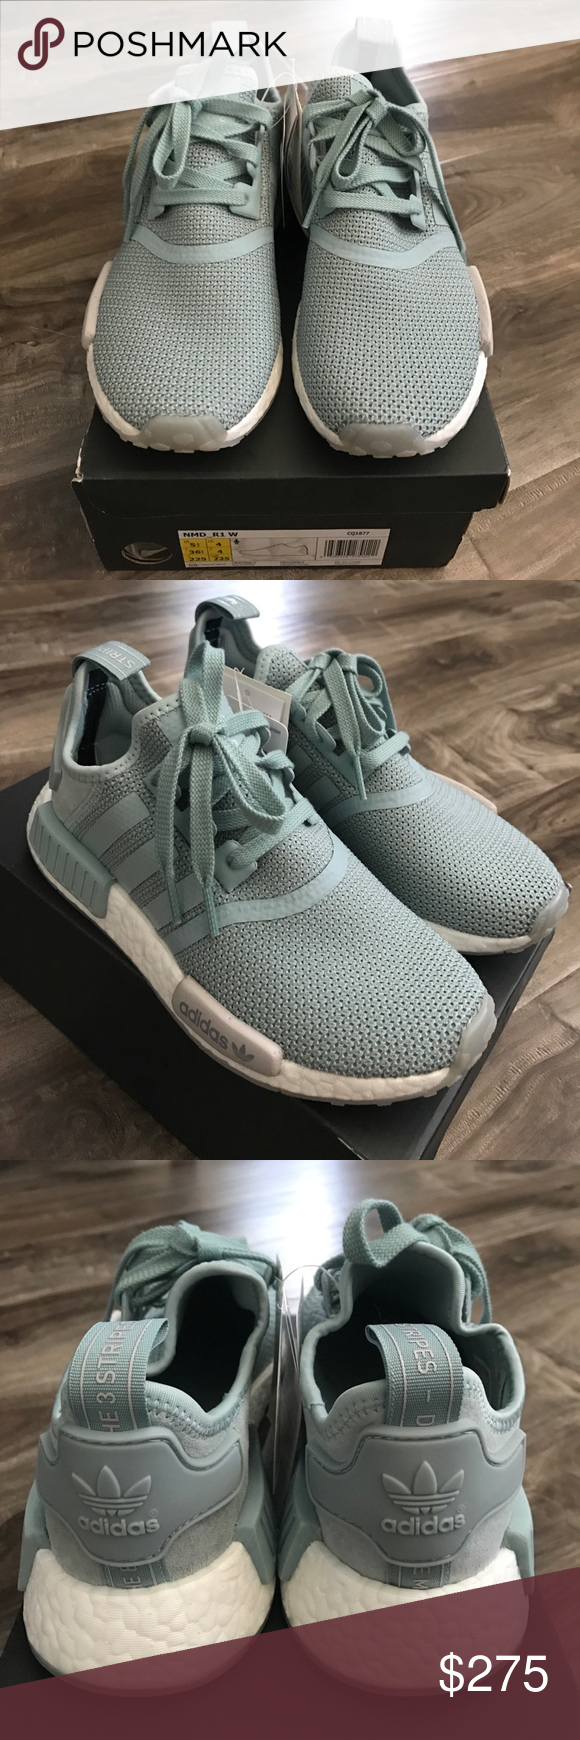 separation shoes 79a7a cef1c Adidas NMD R1 Mint Green Women s 5 1 2 Adidas NMD R1 Mint Green.